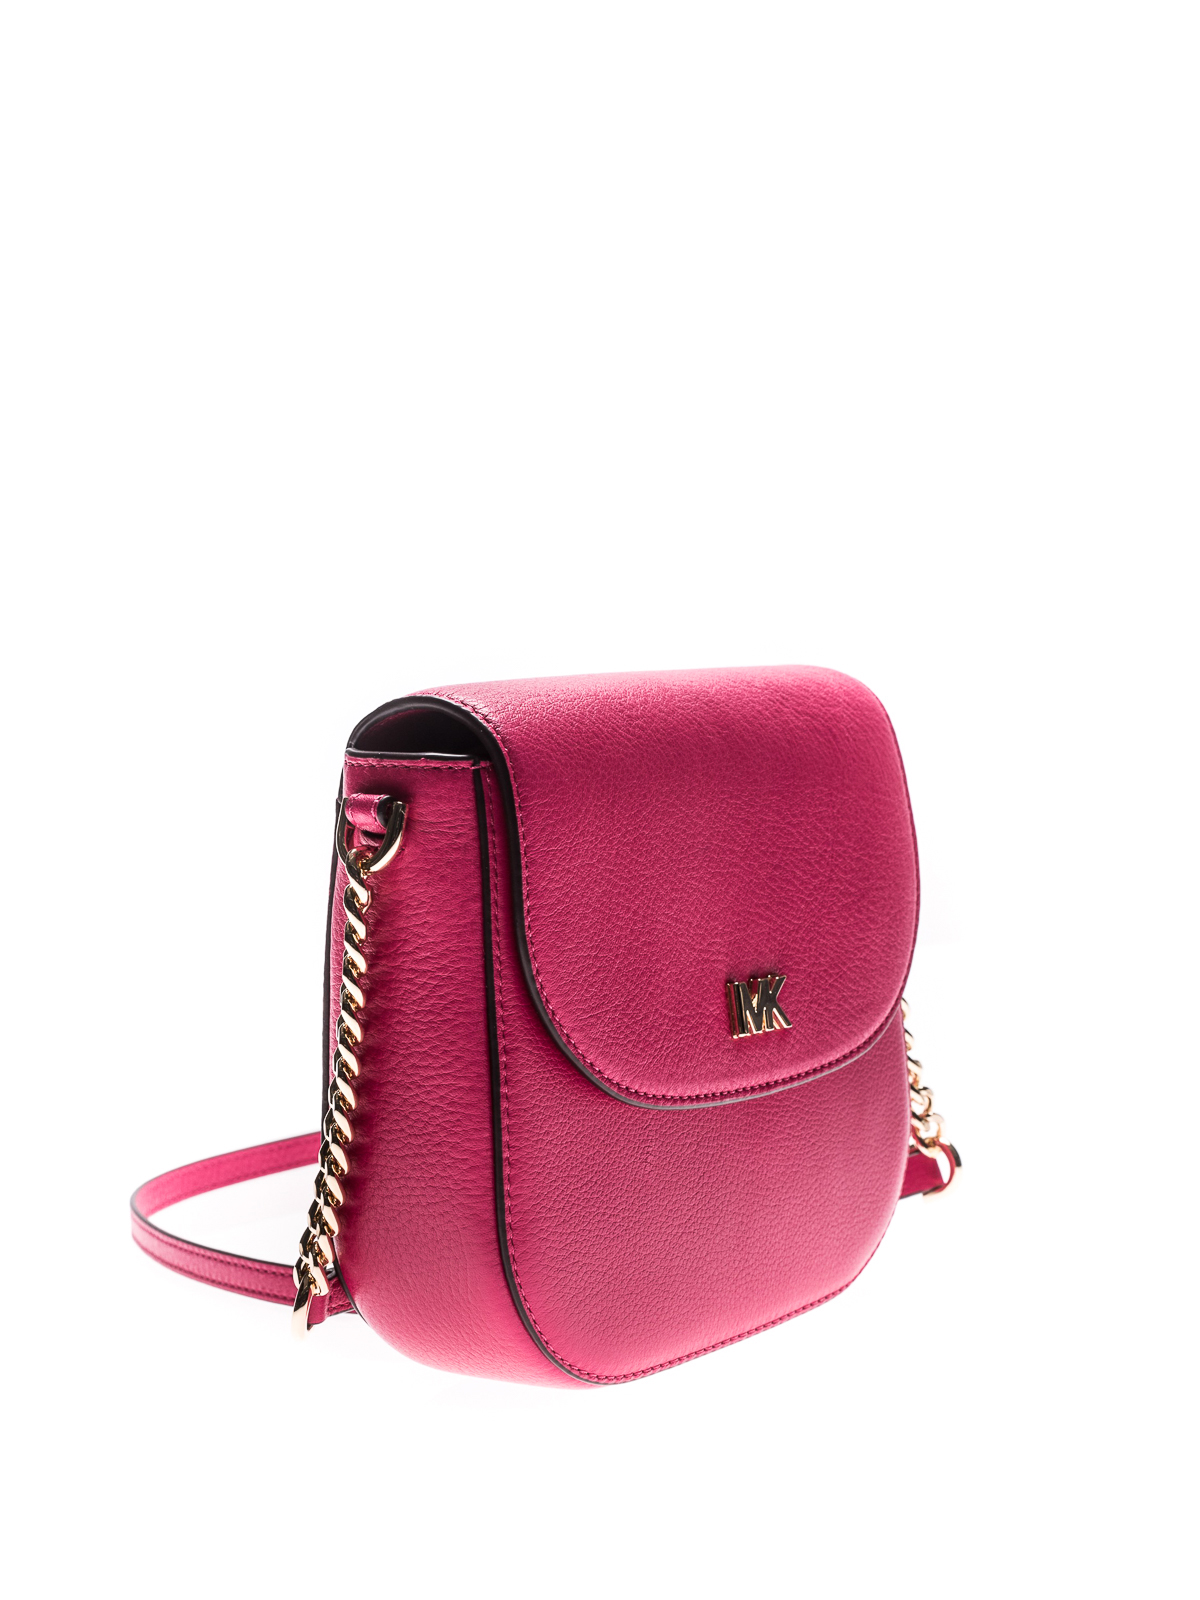 64b698f5b910 MICHAEL KORS: cross body bags online - Mott grainy leather dome crossbody